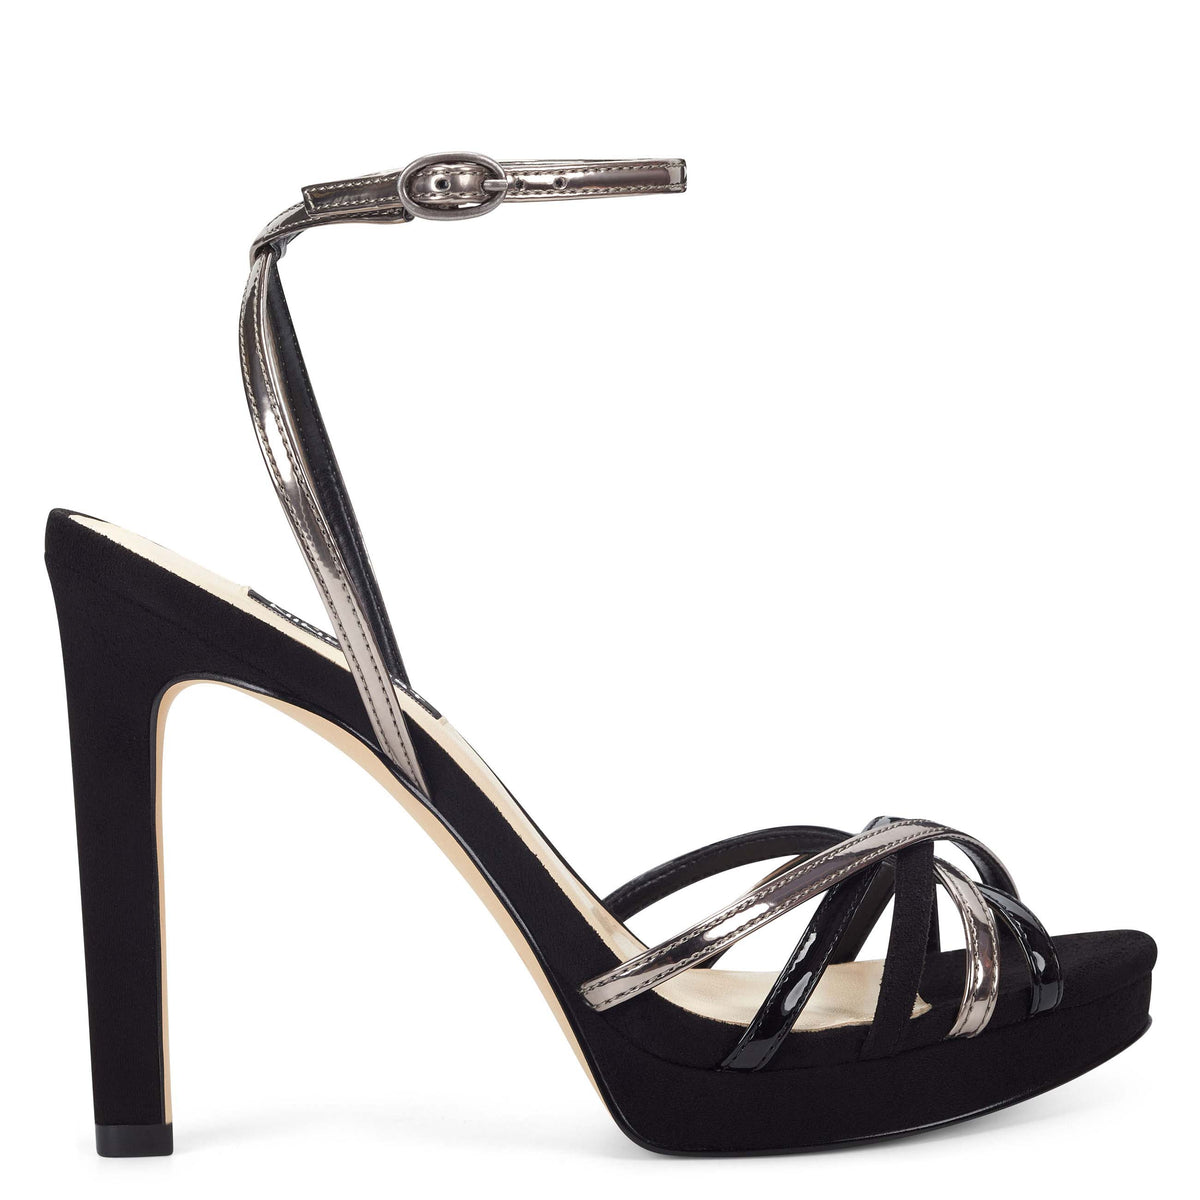 Lorelle Strappy Dress Sandals